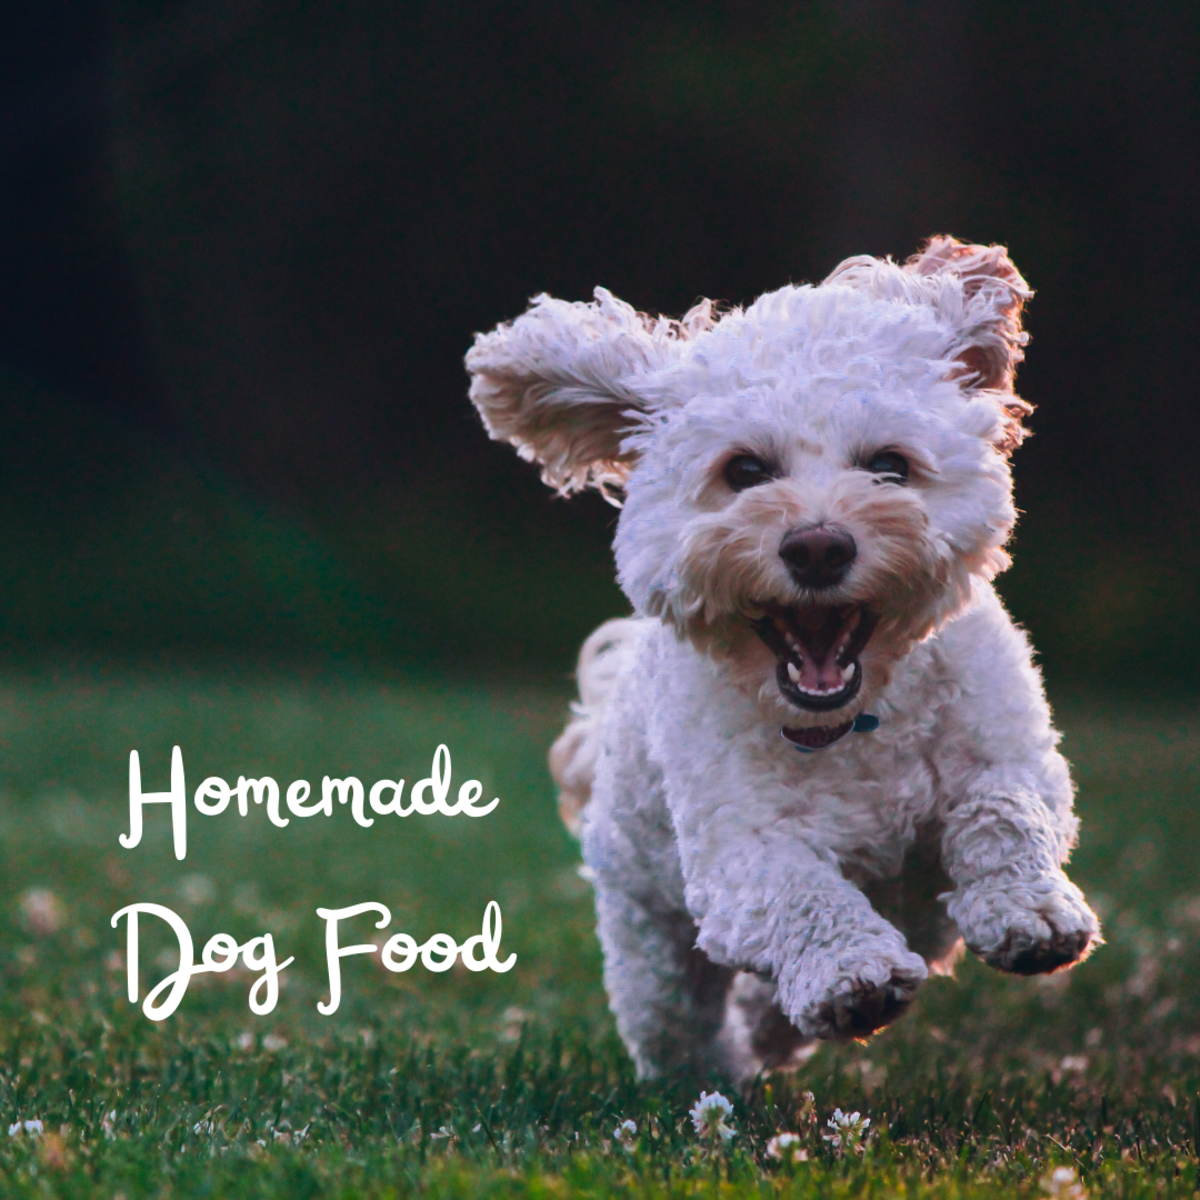 Two Delicious Dog Food Recipes for Small Dogs